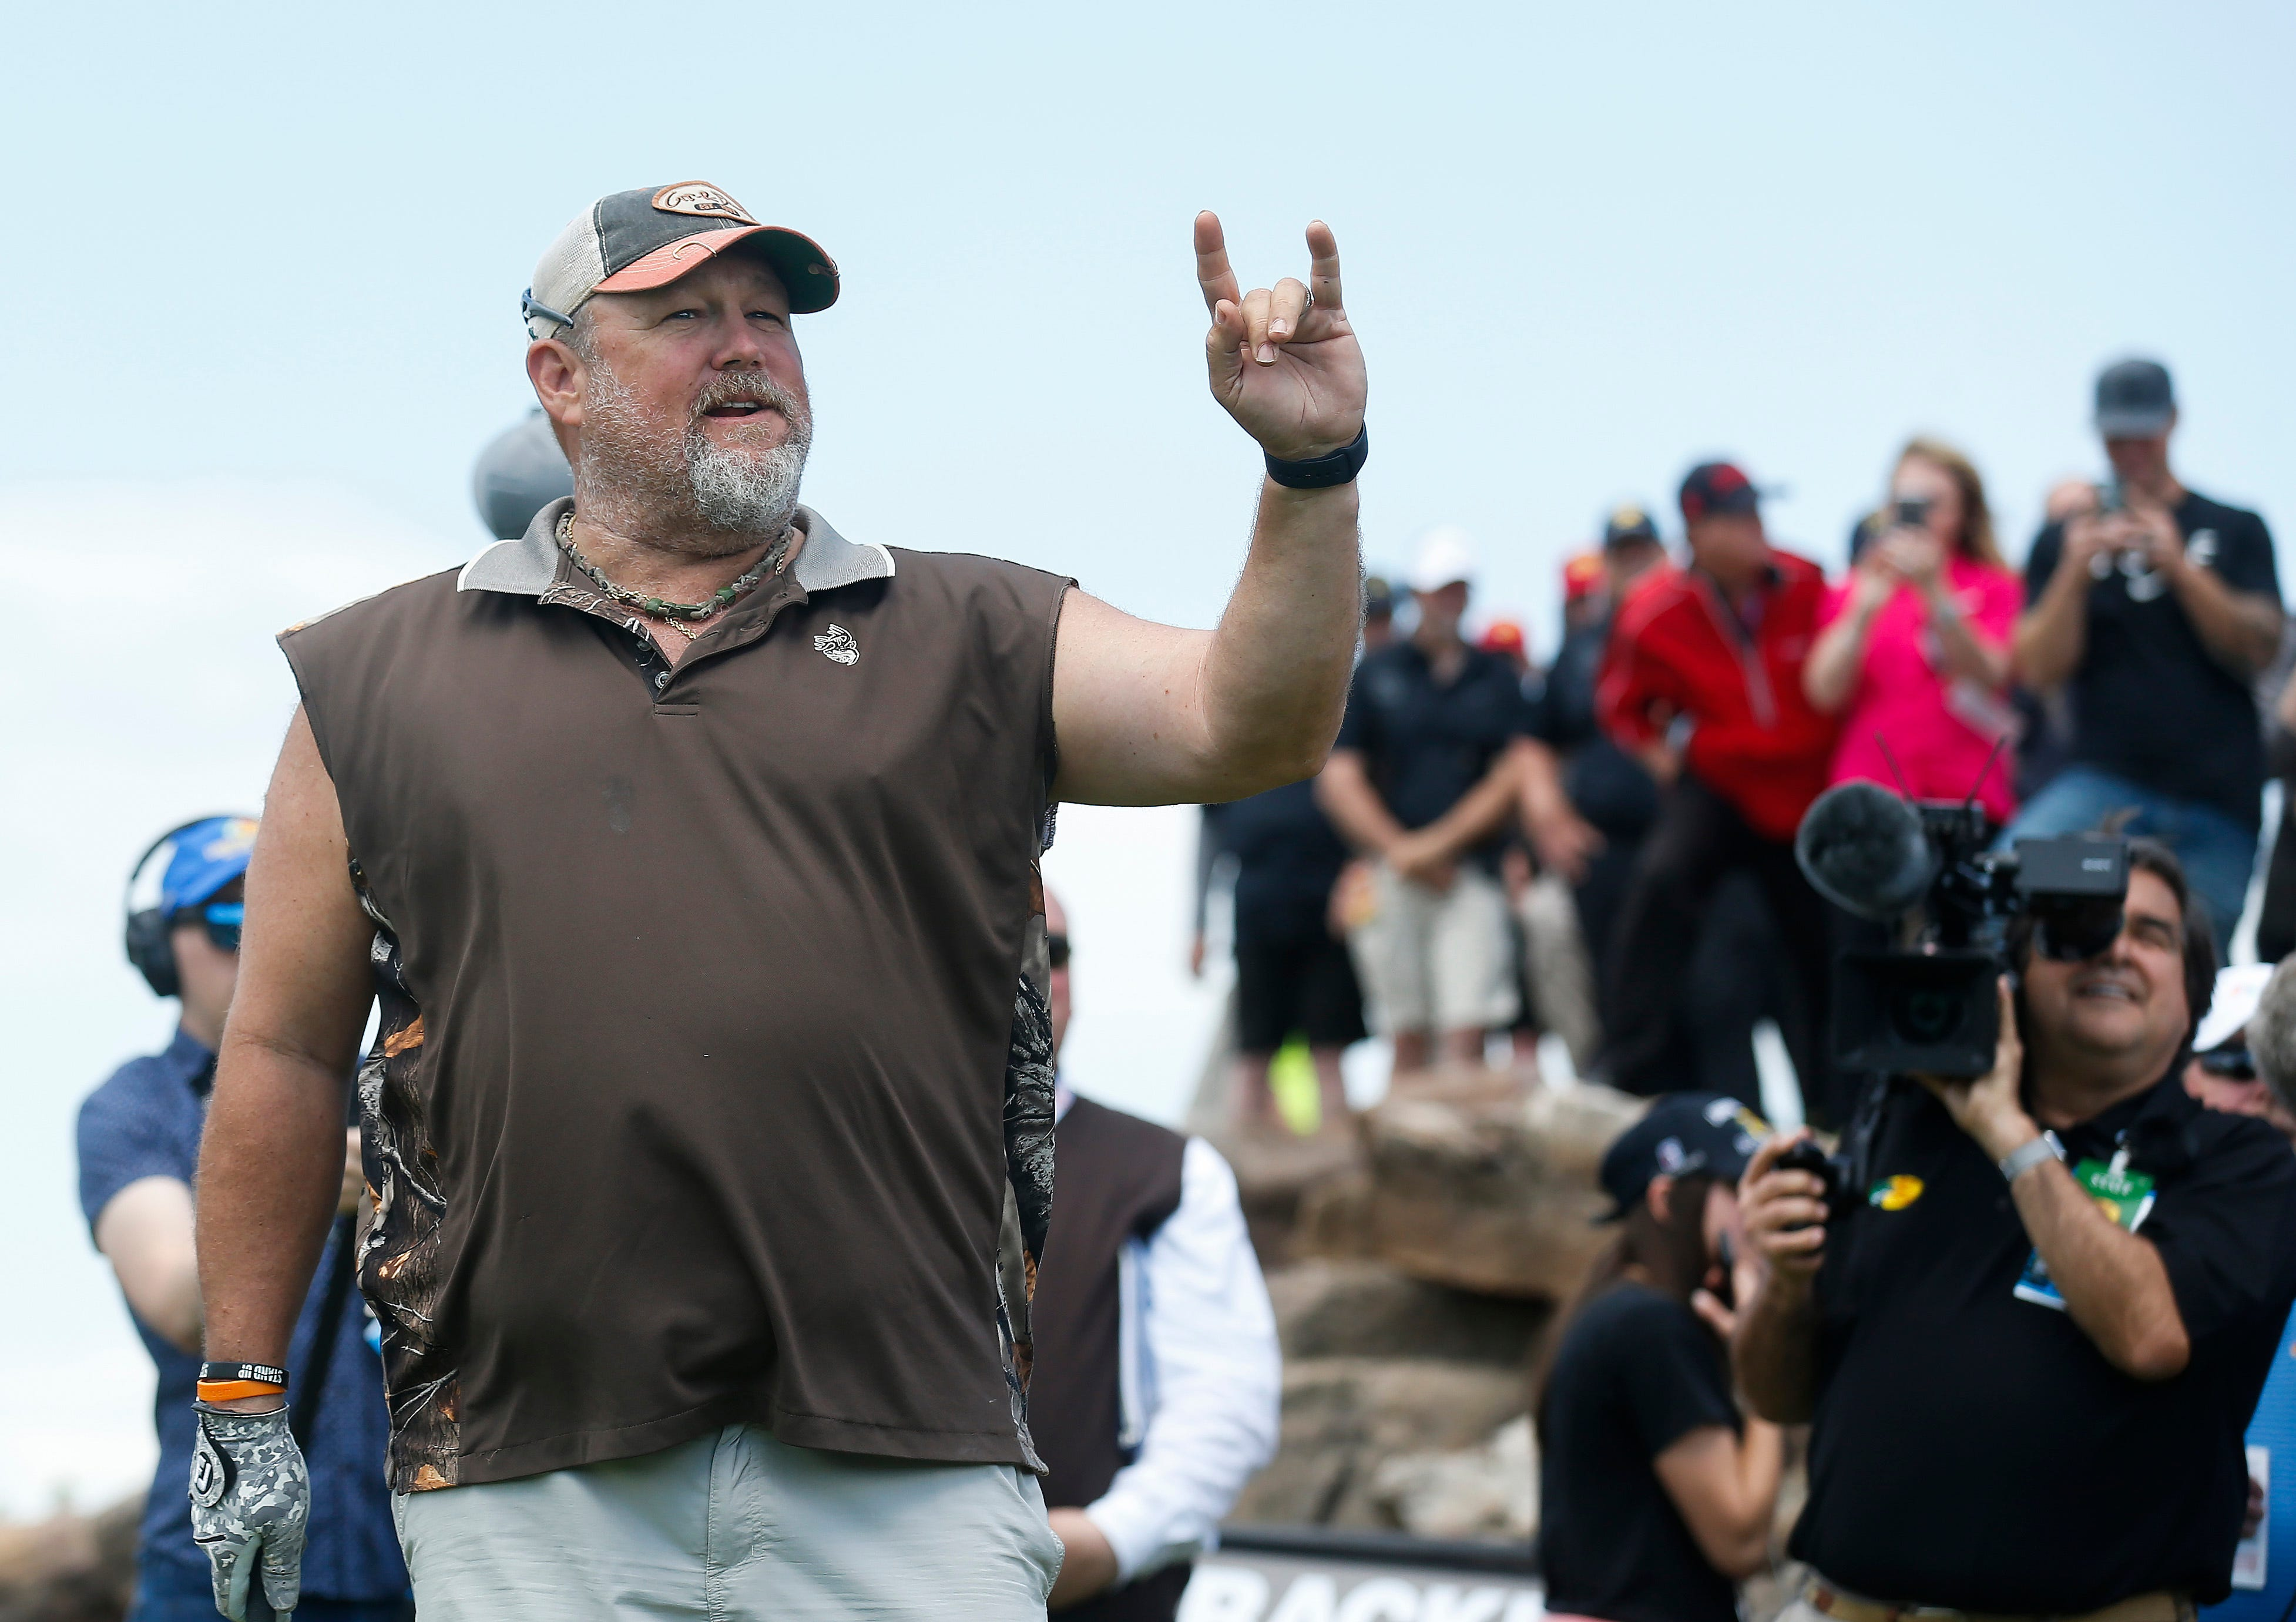 Larry the Cable Guy acknowledges the crowd at the Bass Pro Shops Legends Competition at Top of the Rock on Saturday, April 27, 2019.